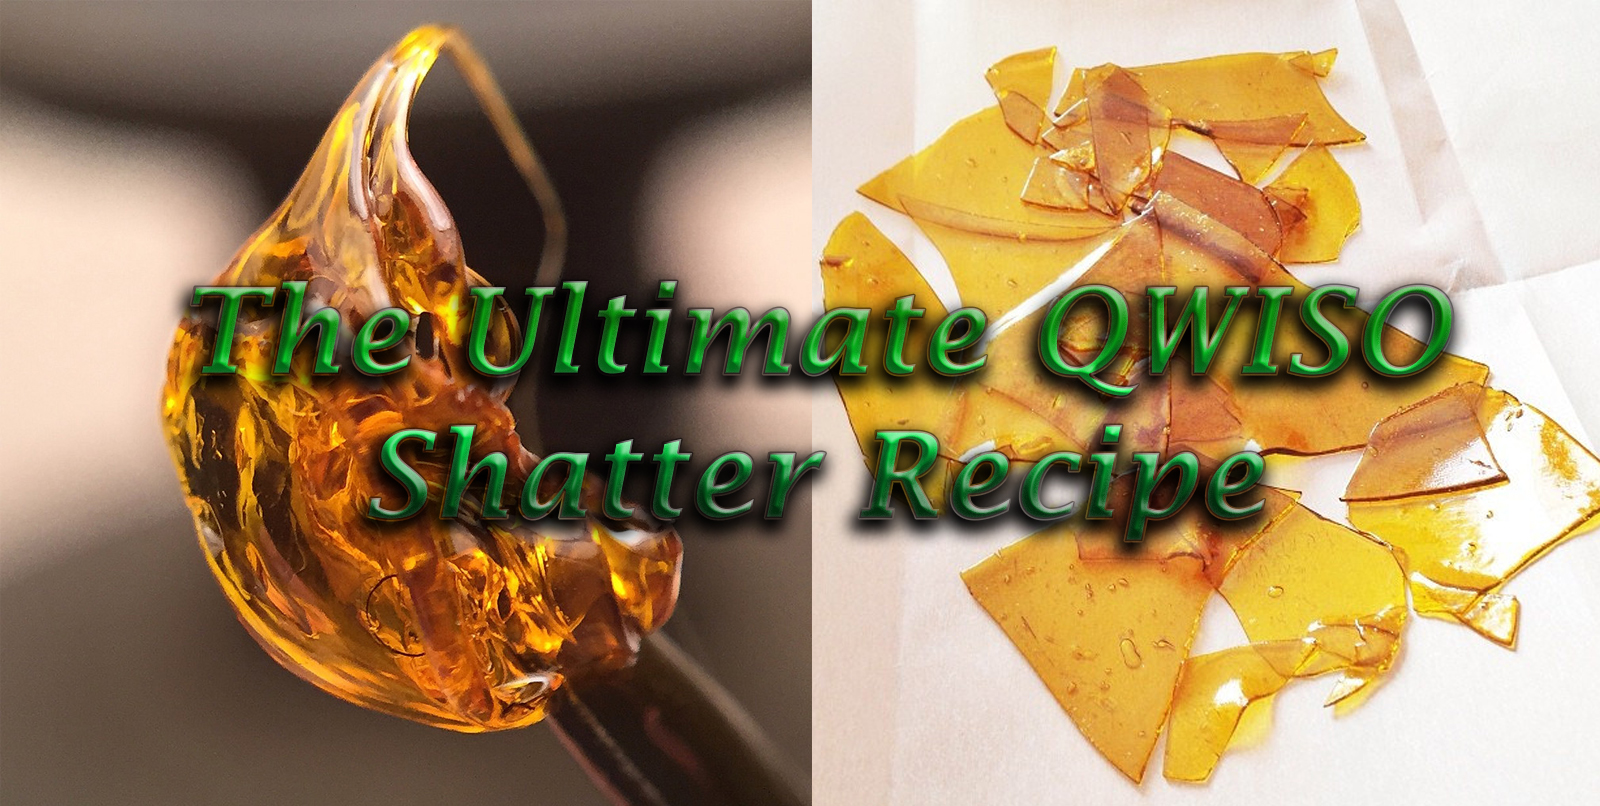 Qwiso shatter